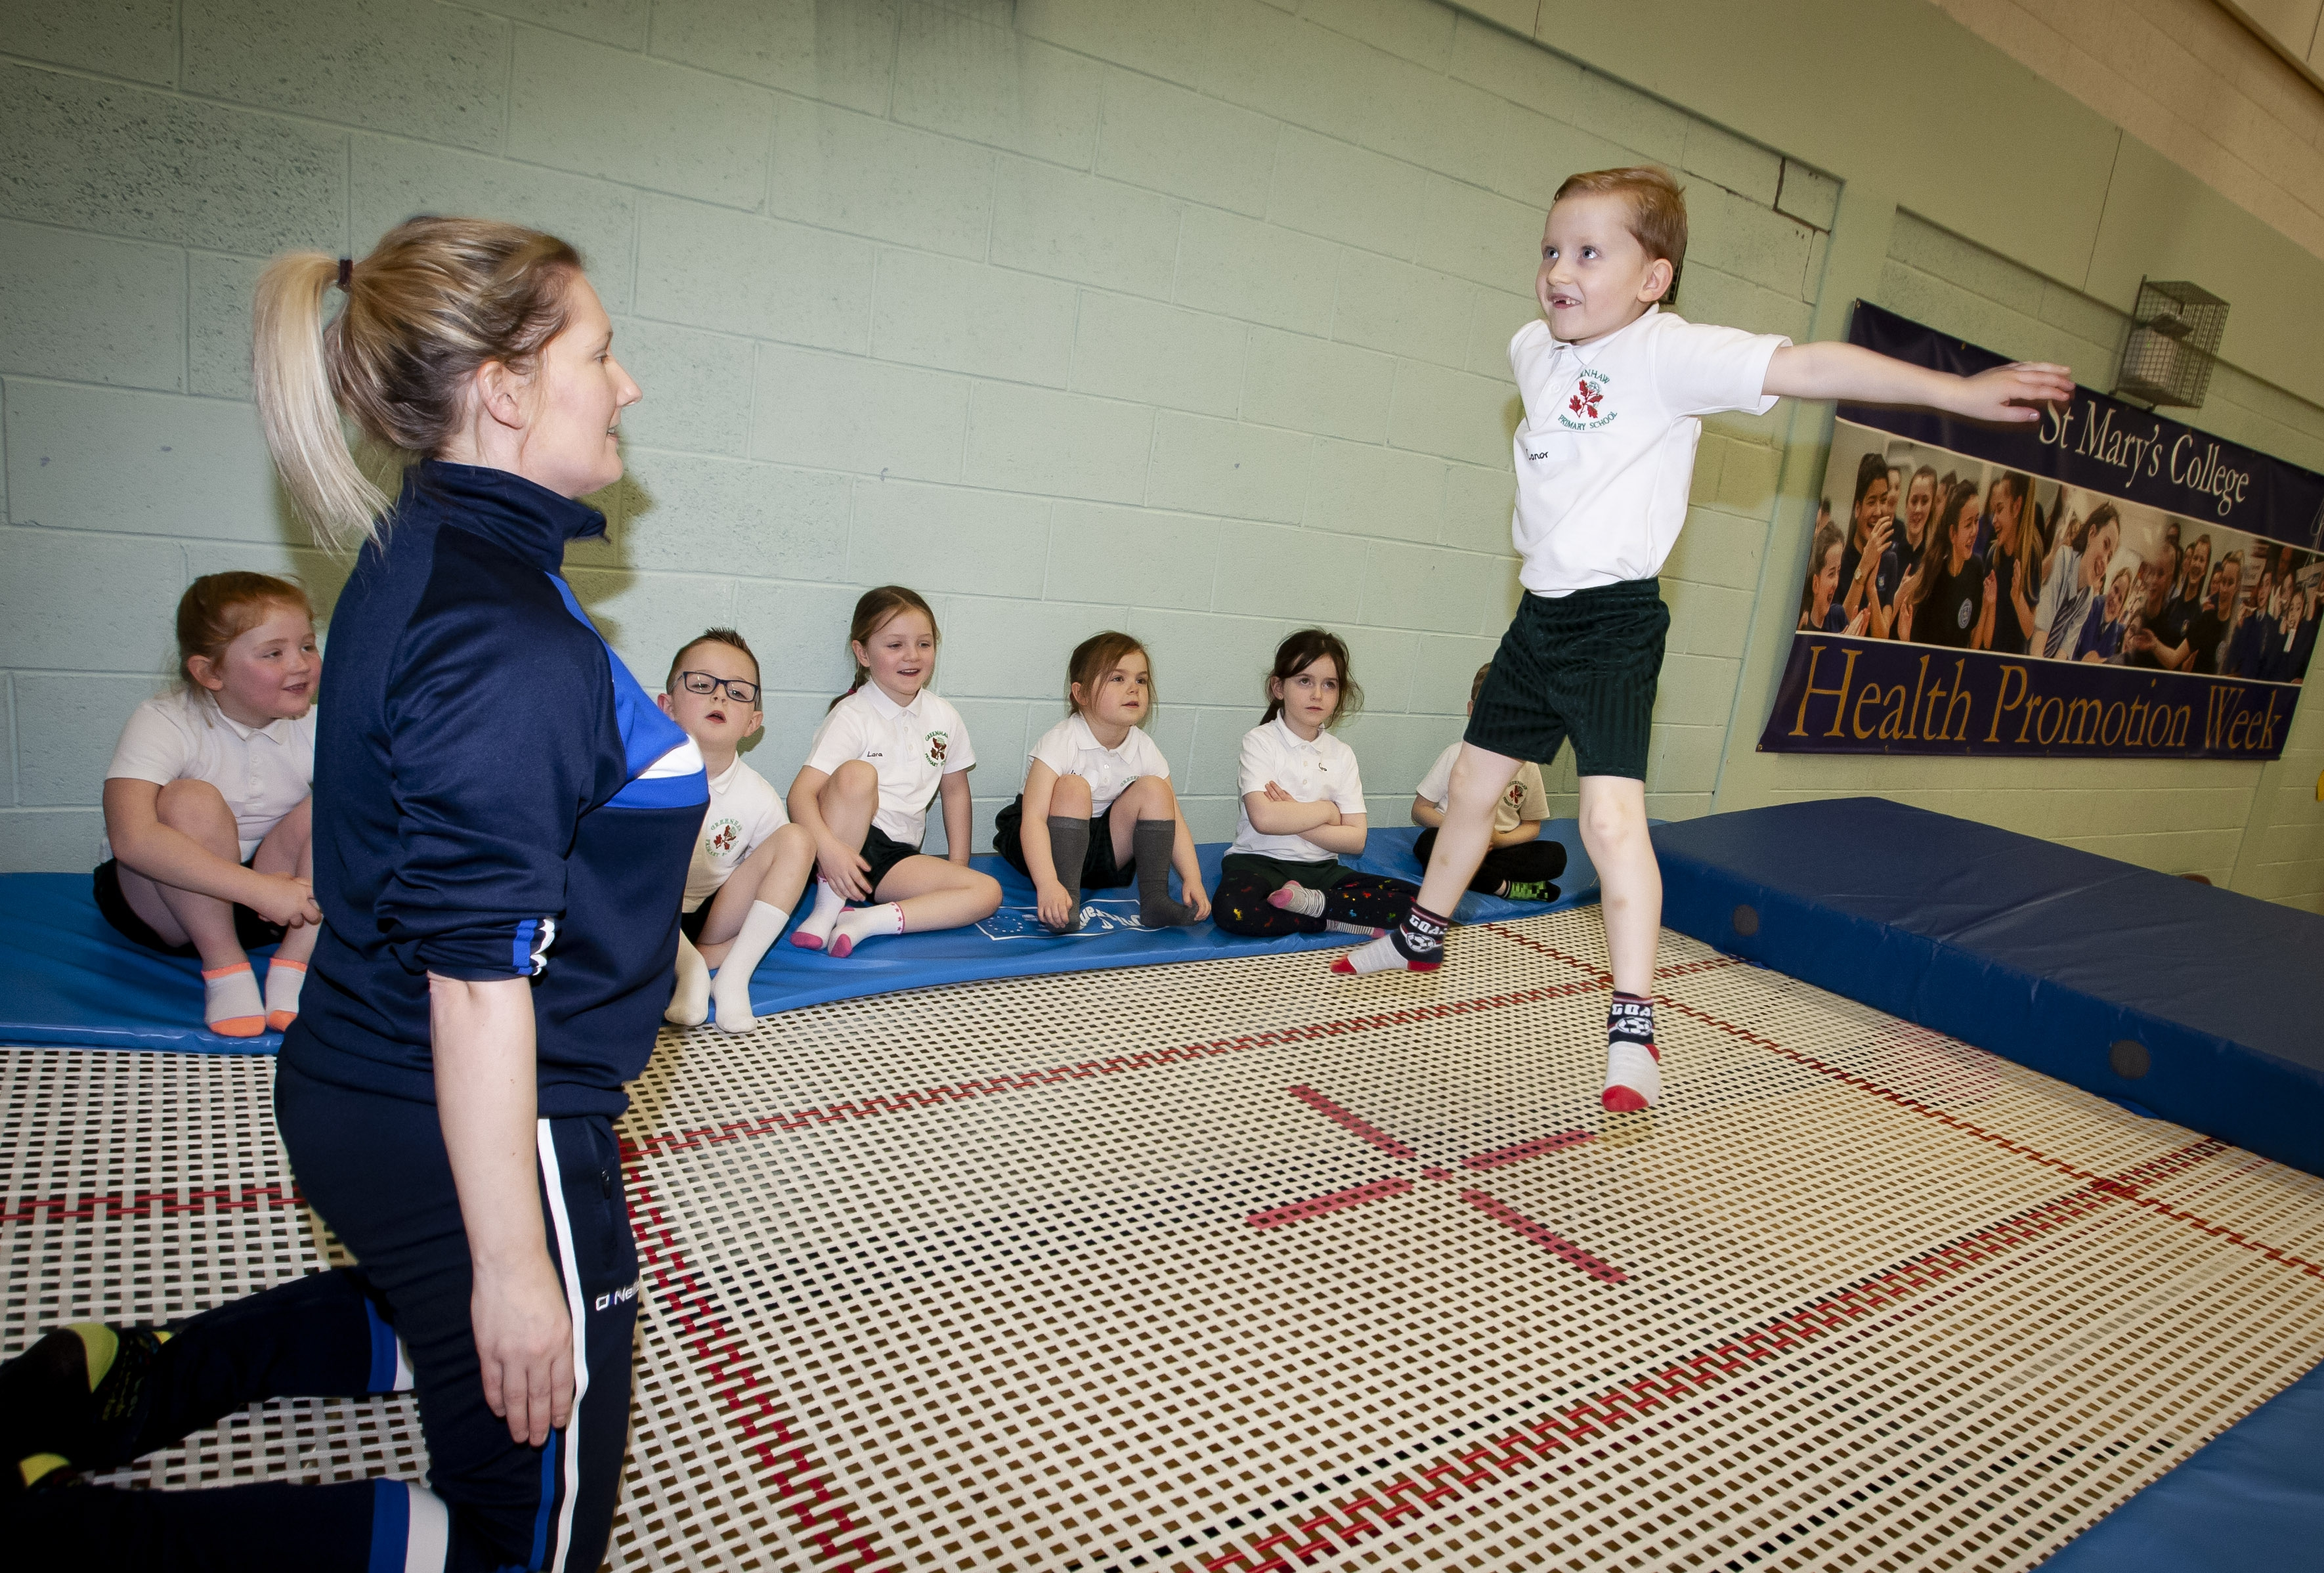 Head of PE at St. Mary's College, Mrs. Jennifer Martin pictured putting her son Conor, a P2 pupil from Greenhaw PS through his paces on the trampoline during Health Promotion Week at the college on Friday morning. (Photos: Jim McCafferty Photography)